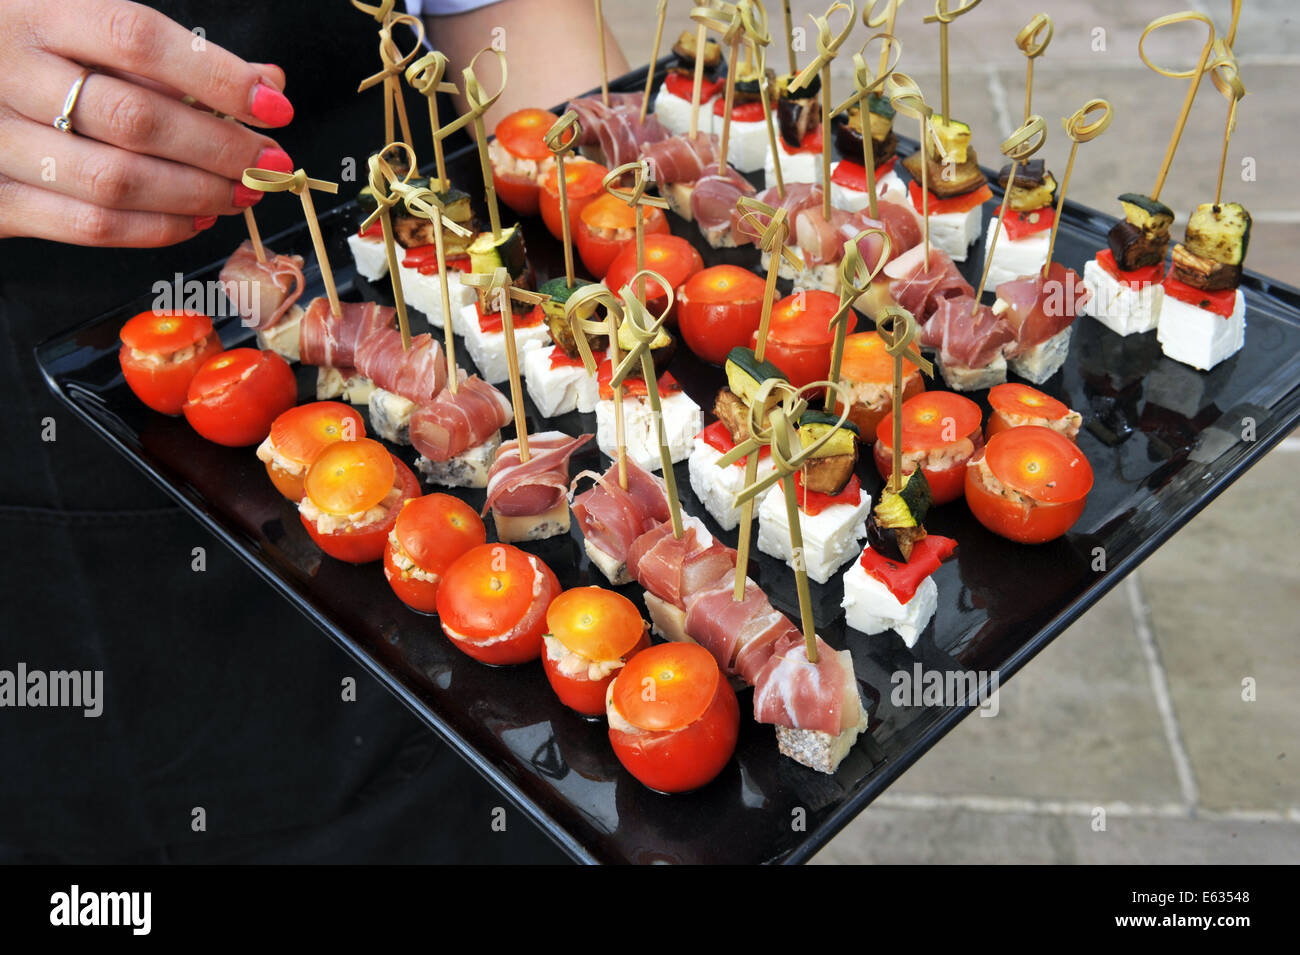 Canapés Show Canape Platter Stock Photos Canape Platter Stock Images Alamy